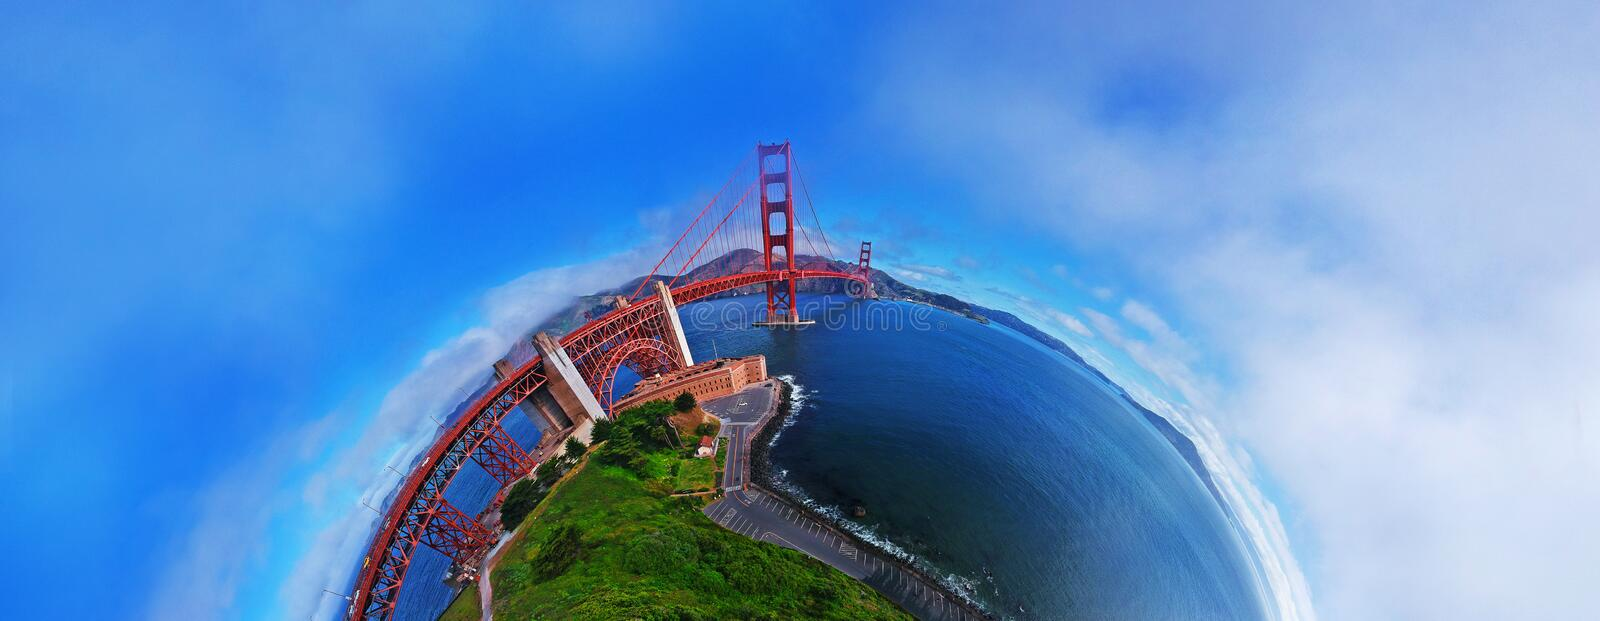 Flyg- sikt av Golden gate bridge i San Francisco, Kalifornien SURRSKOTT, PLANETPANORAMA 180 GRADER royaltyfri fotografi